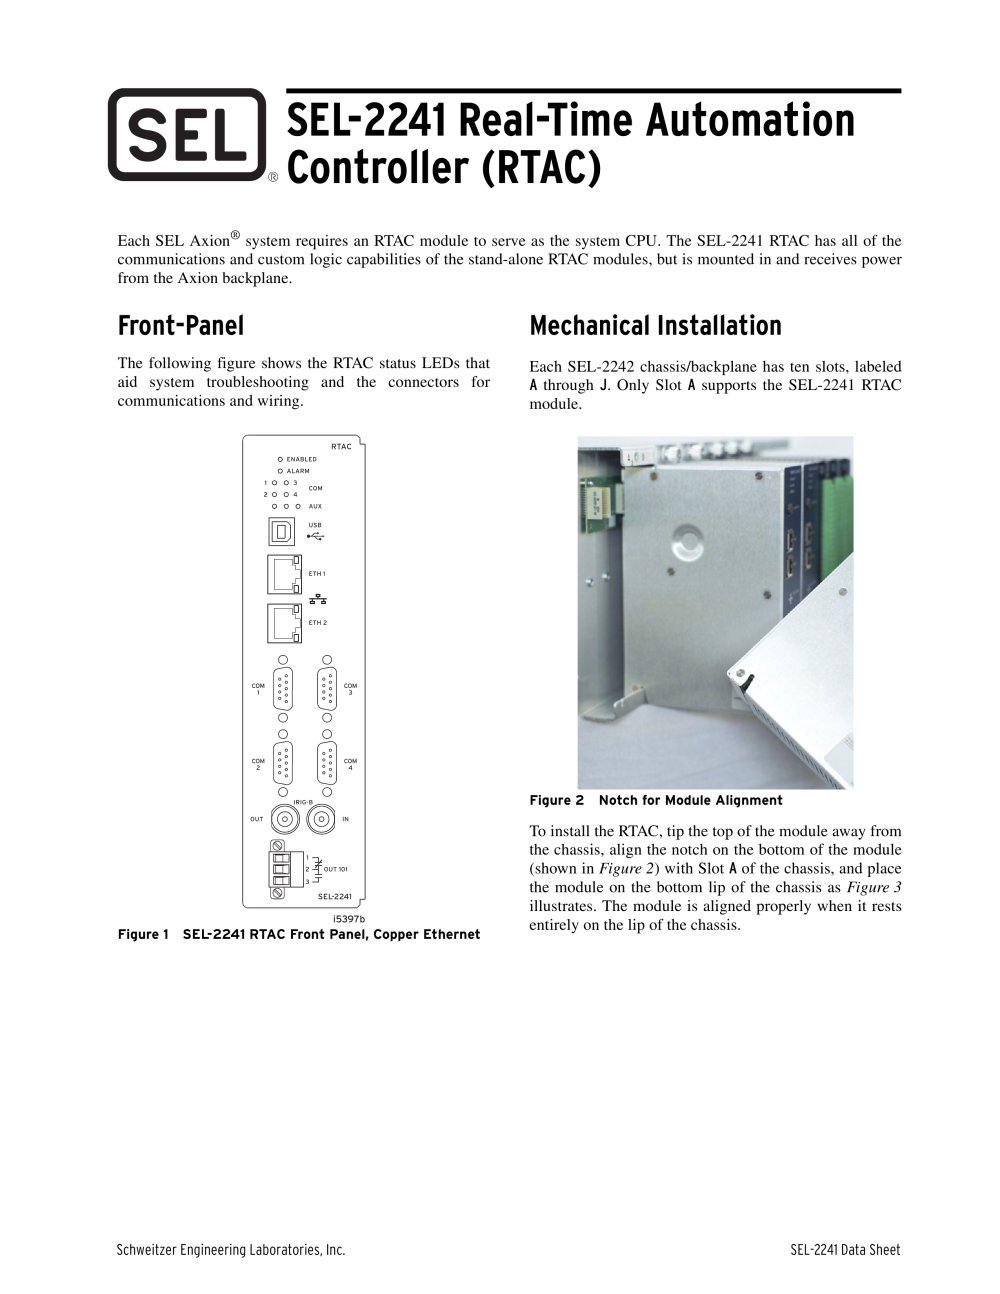 sel 2241 real time automation controller rtac 603708_1b sel 2241 real time automation controller (rtac) schweitzer sel 451 wiring diagram at mifinder.co